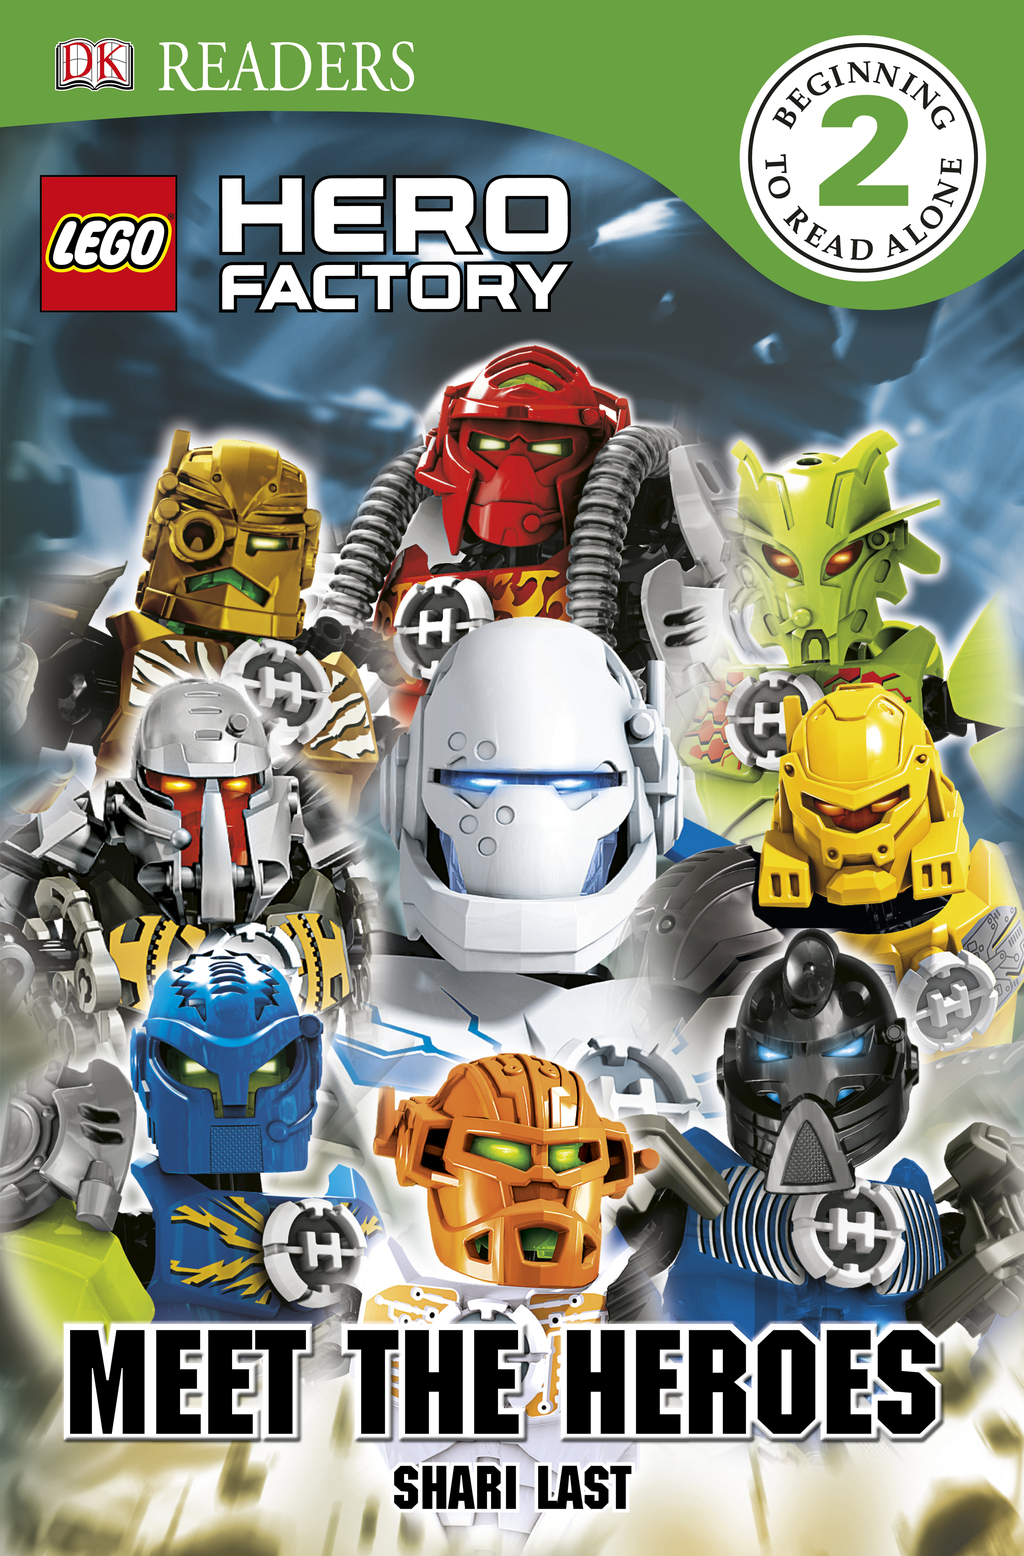 DK Readers: LEGO® Hero Factory: Meet the Heroes